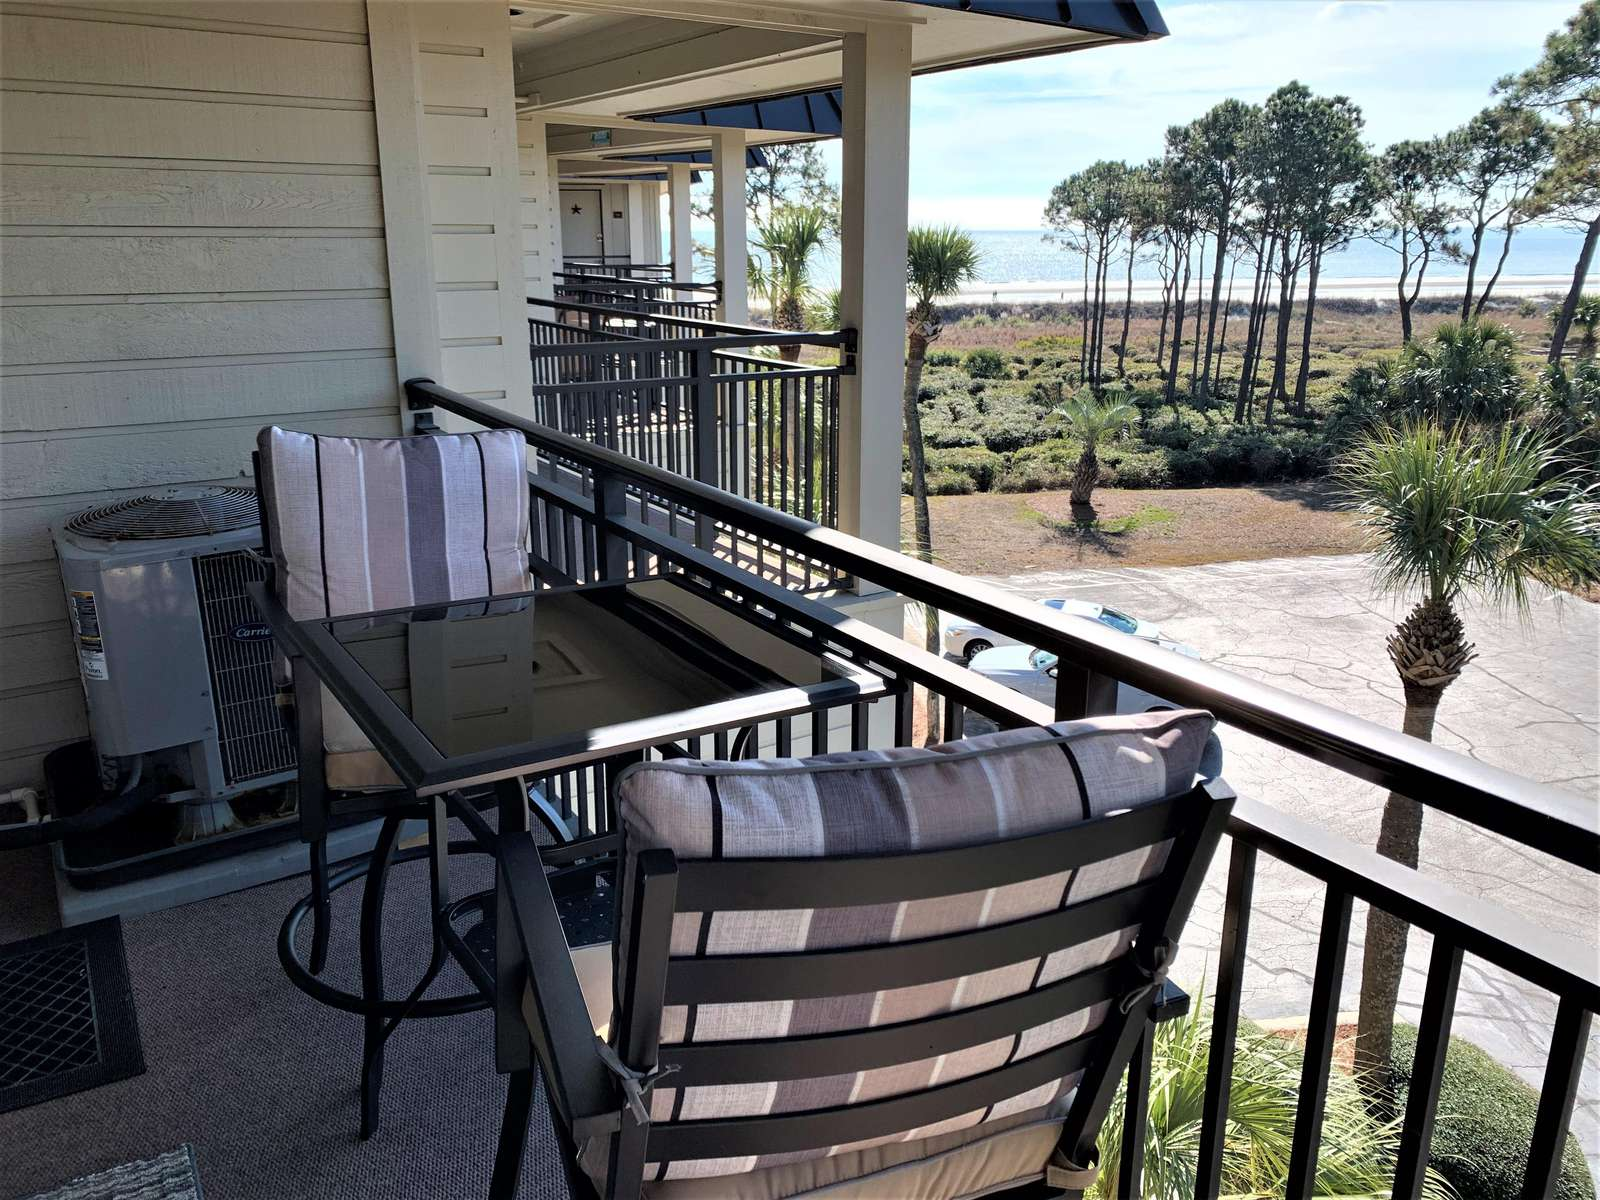 Coffee or Dinner from the Balcony with Ocean Views